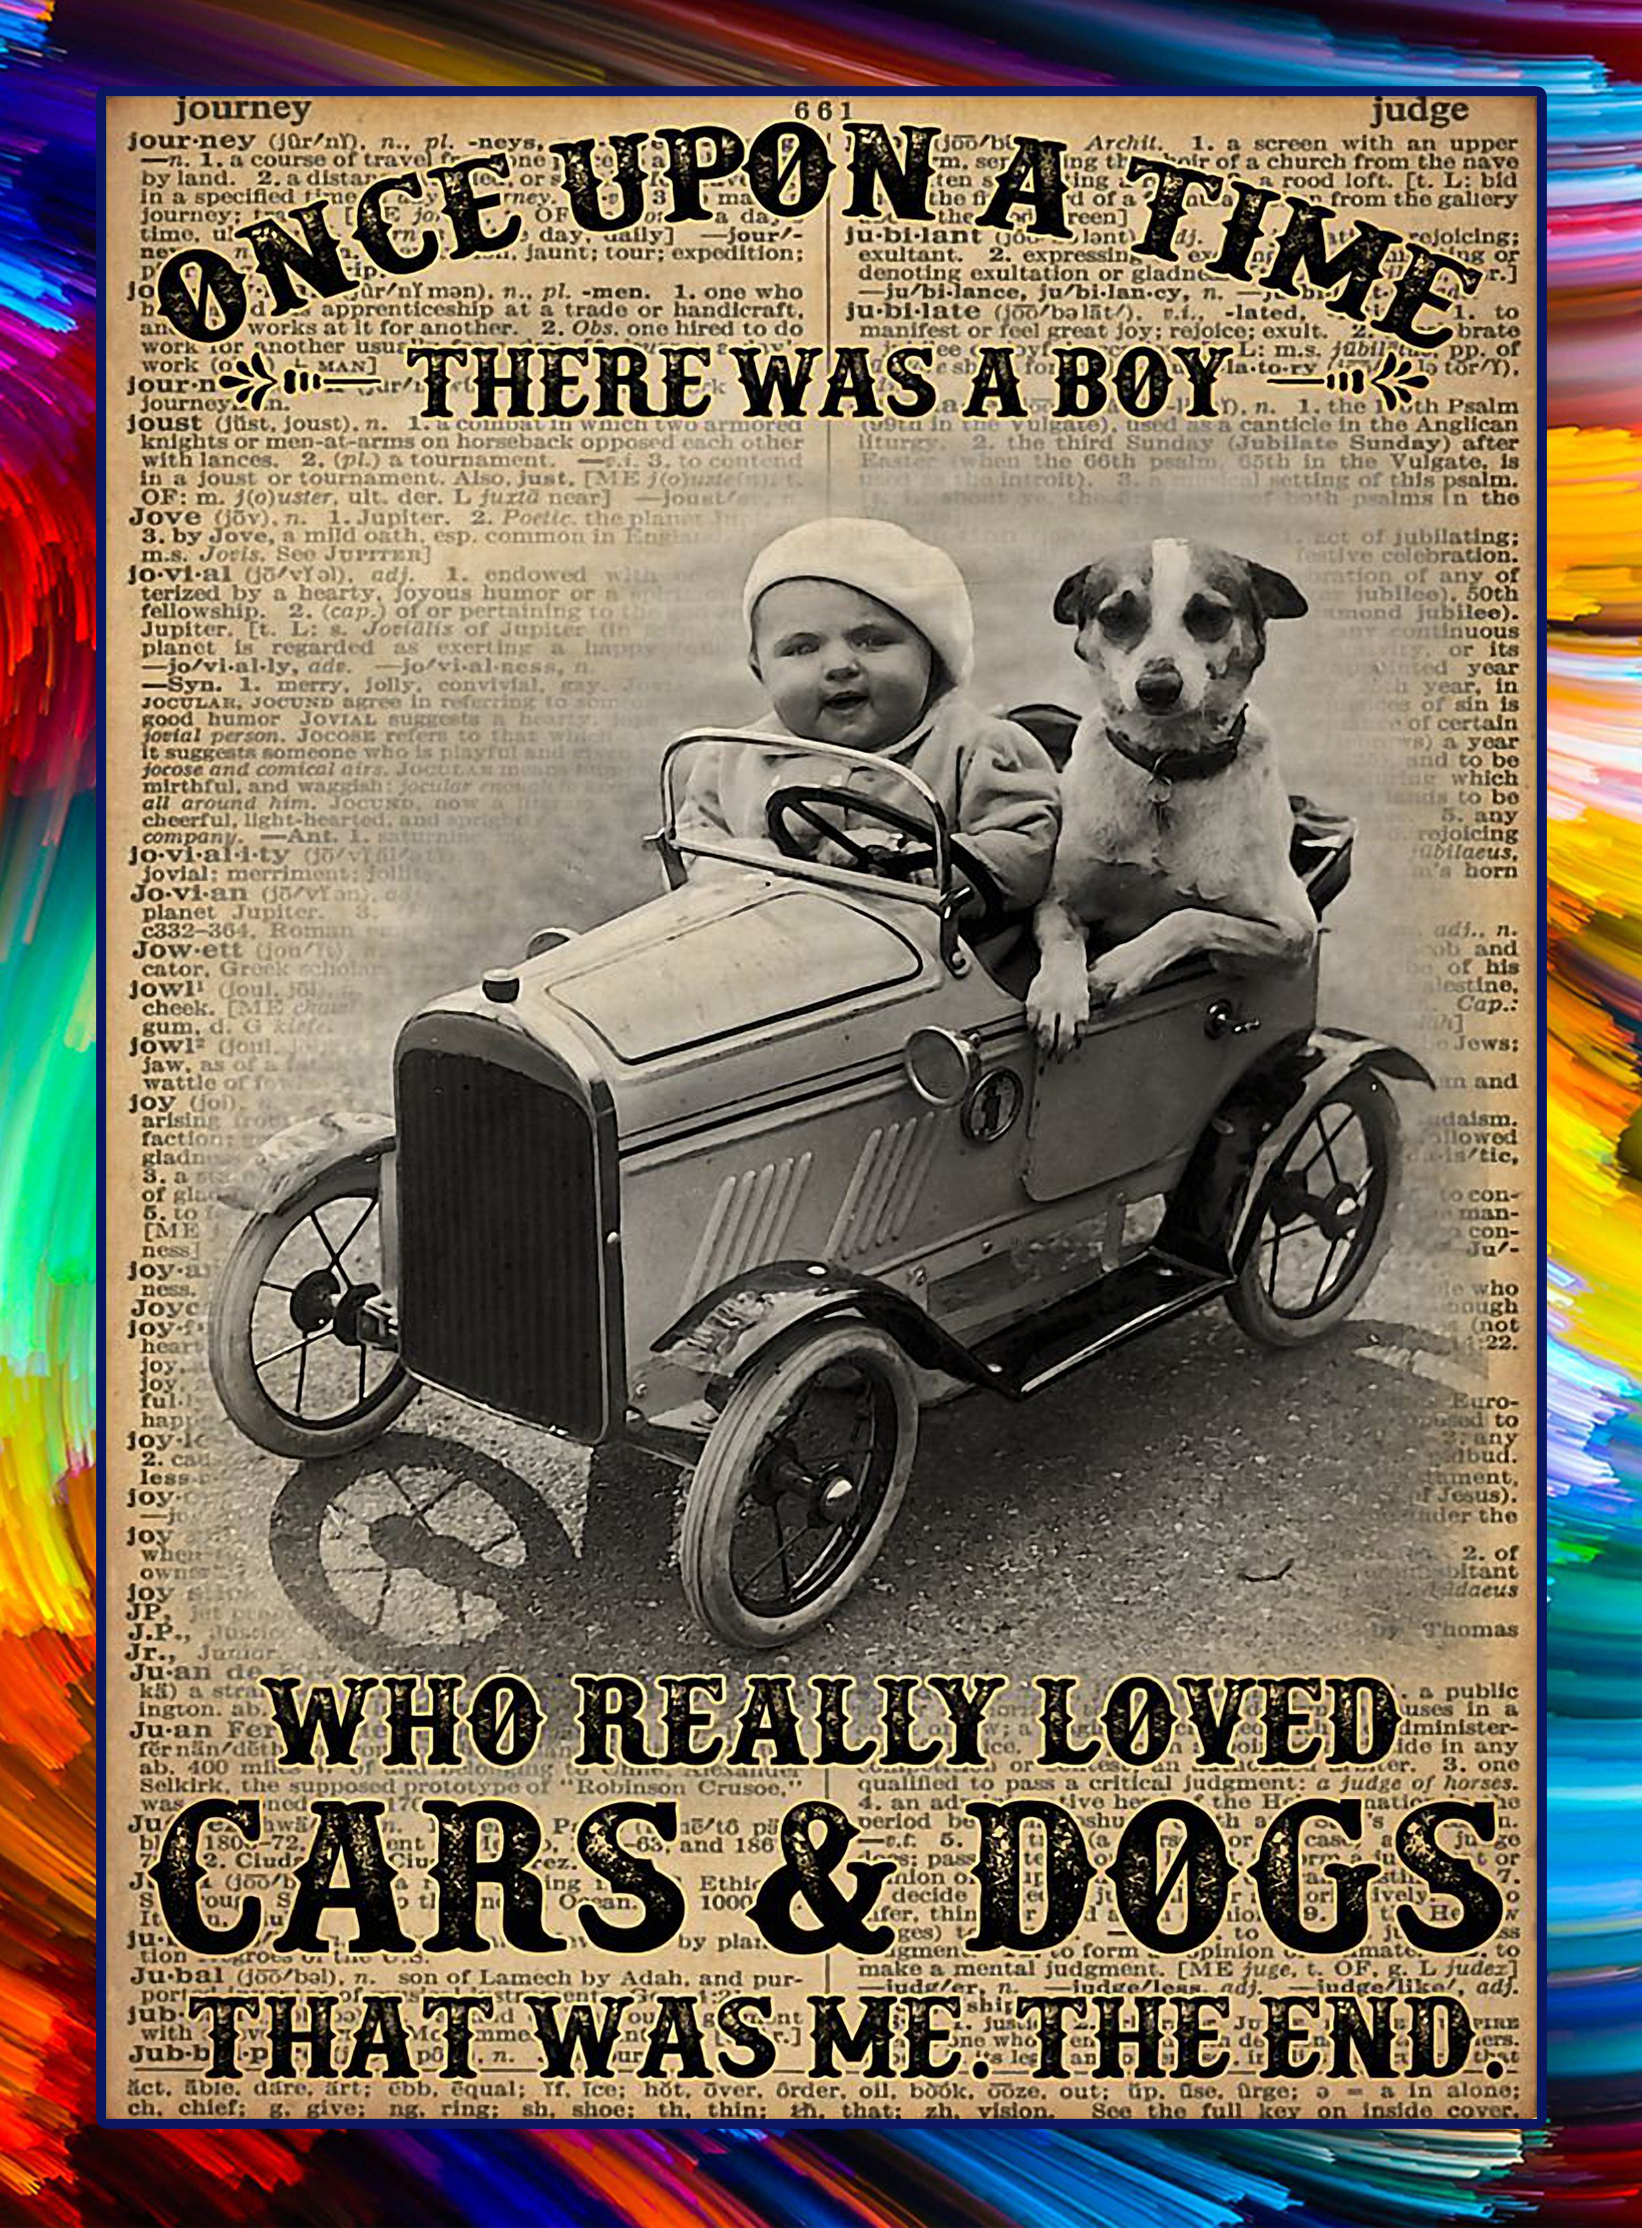 Once upon a time there was a boy who really loved cars and dogs poster - A3Once upon a time there was a boy who really loved cars and dogs poster - A3